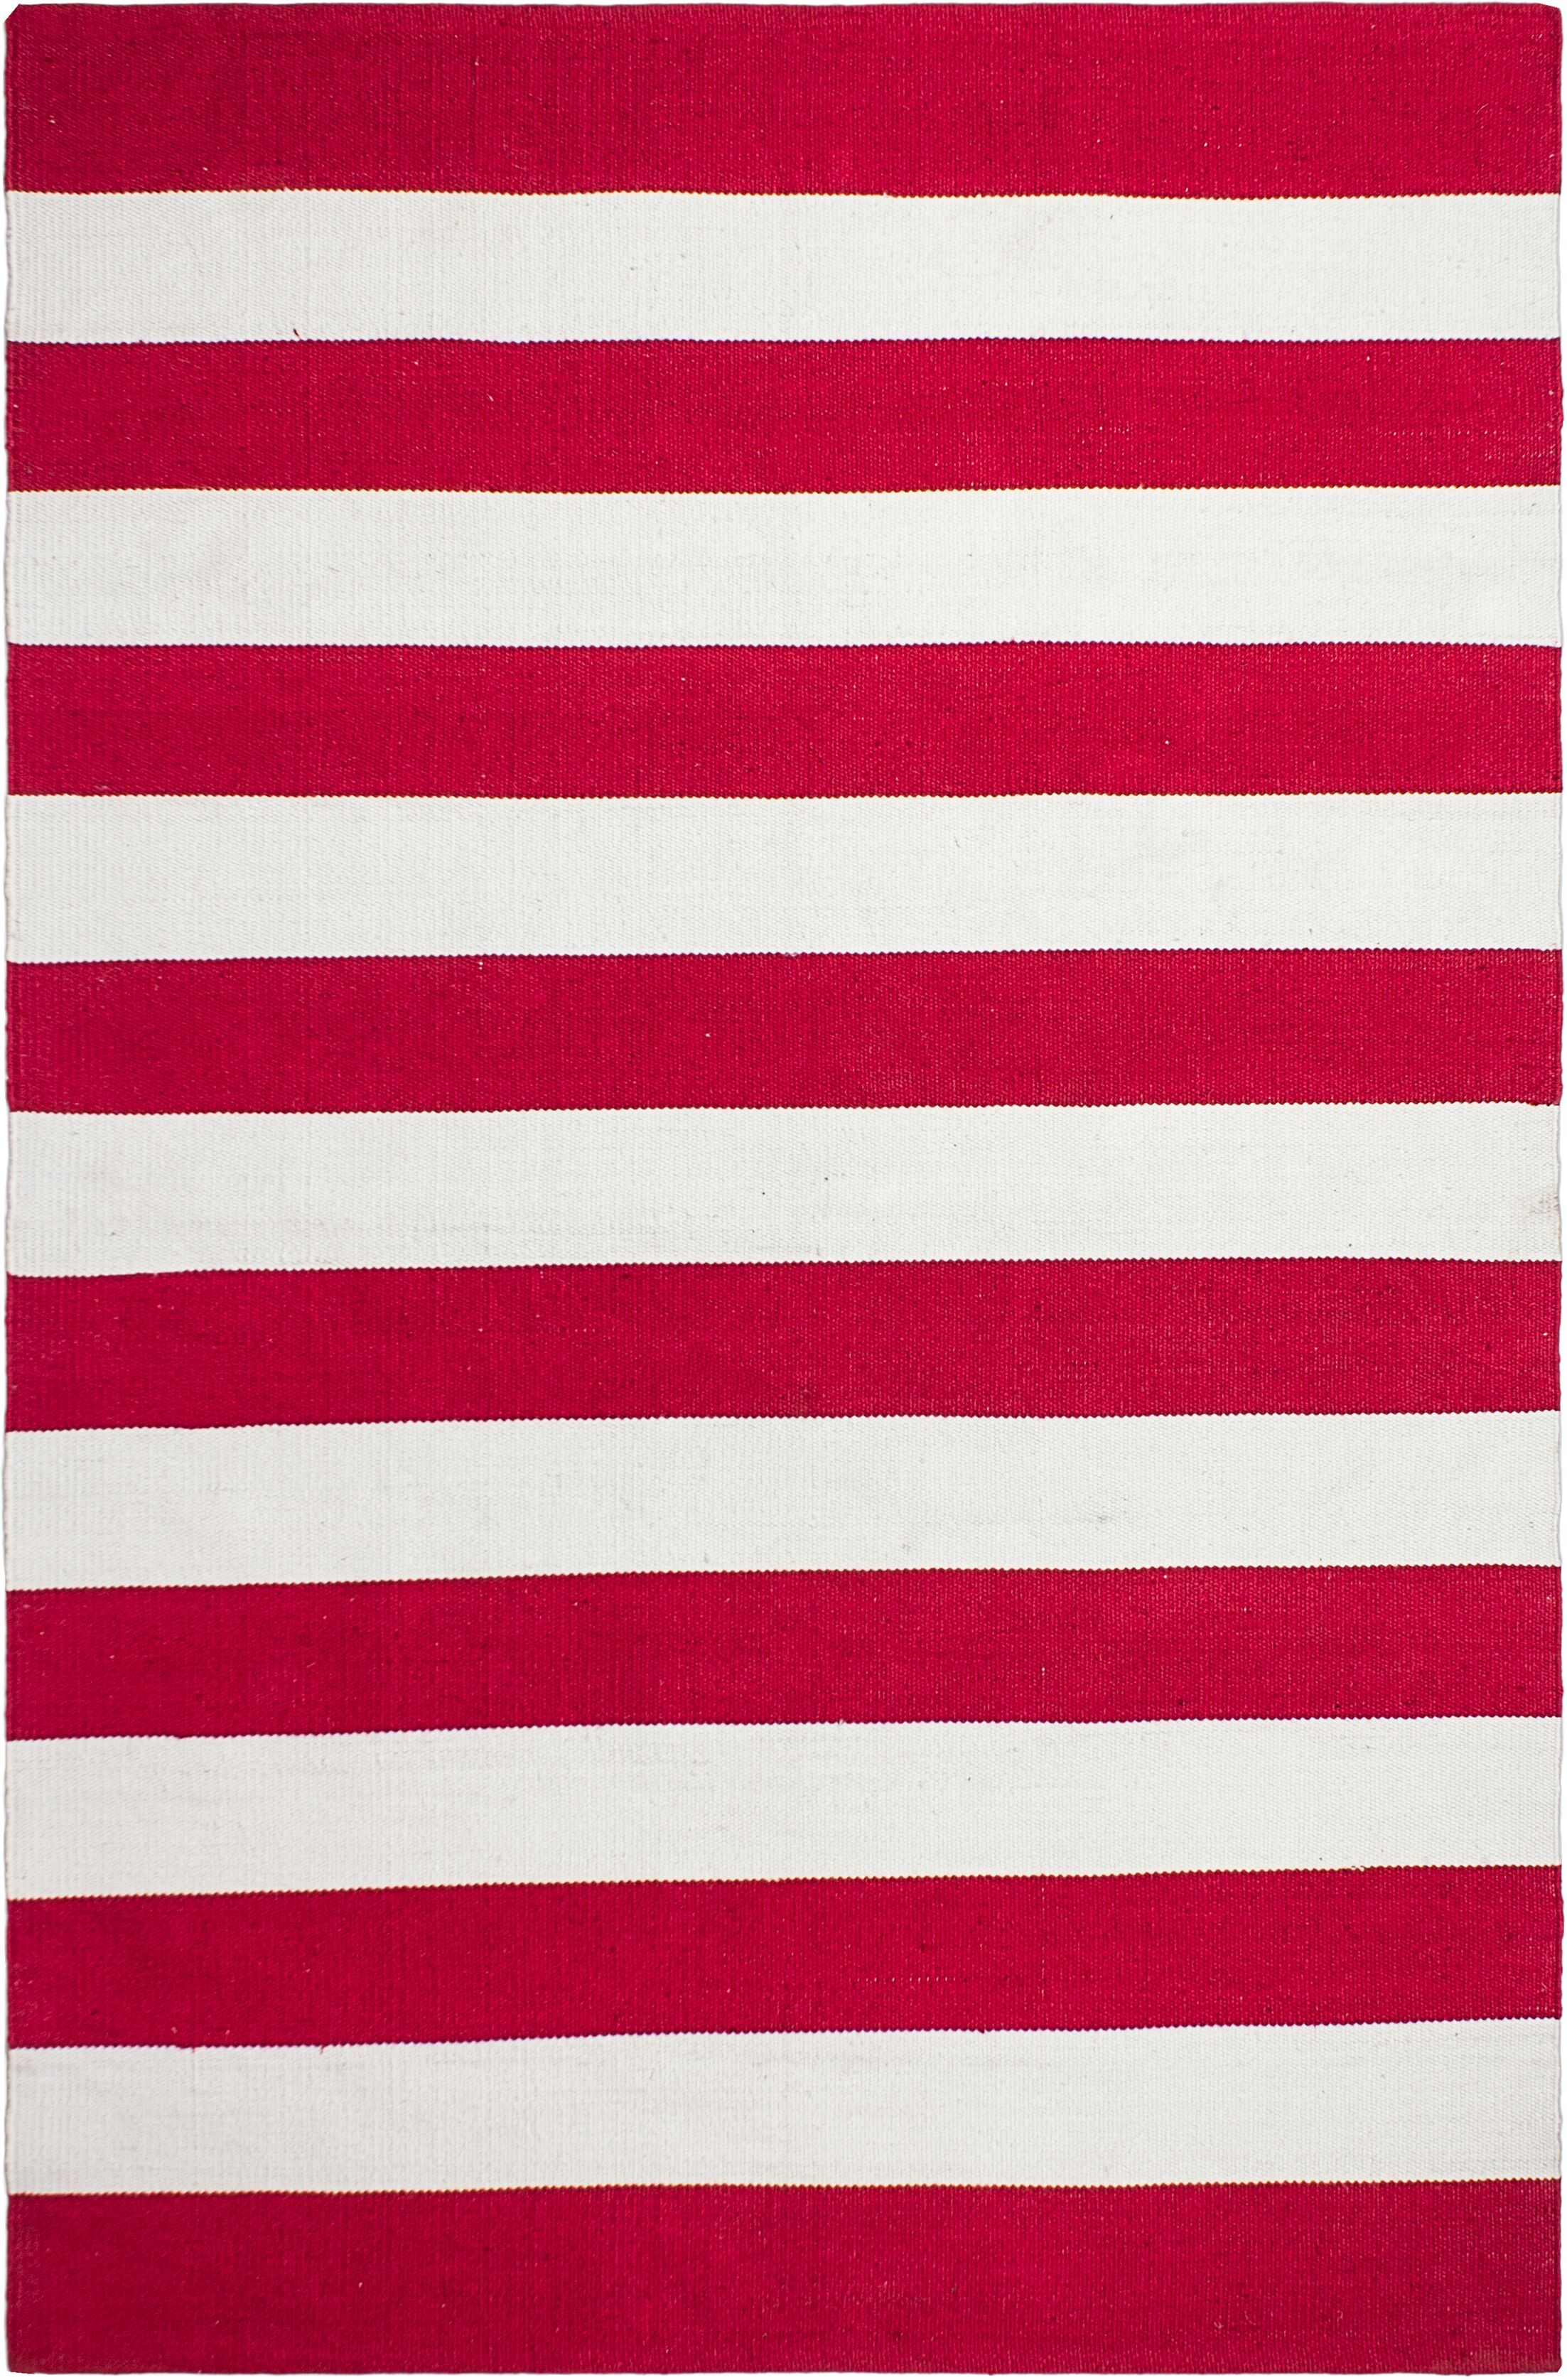 Nantucket Striped Hand-Woven Red/White Indoor/Outdoor Area Rug Rug Size: 8' x 10'